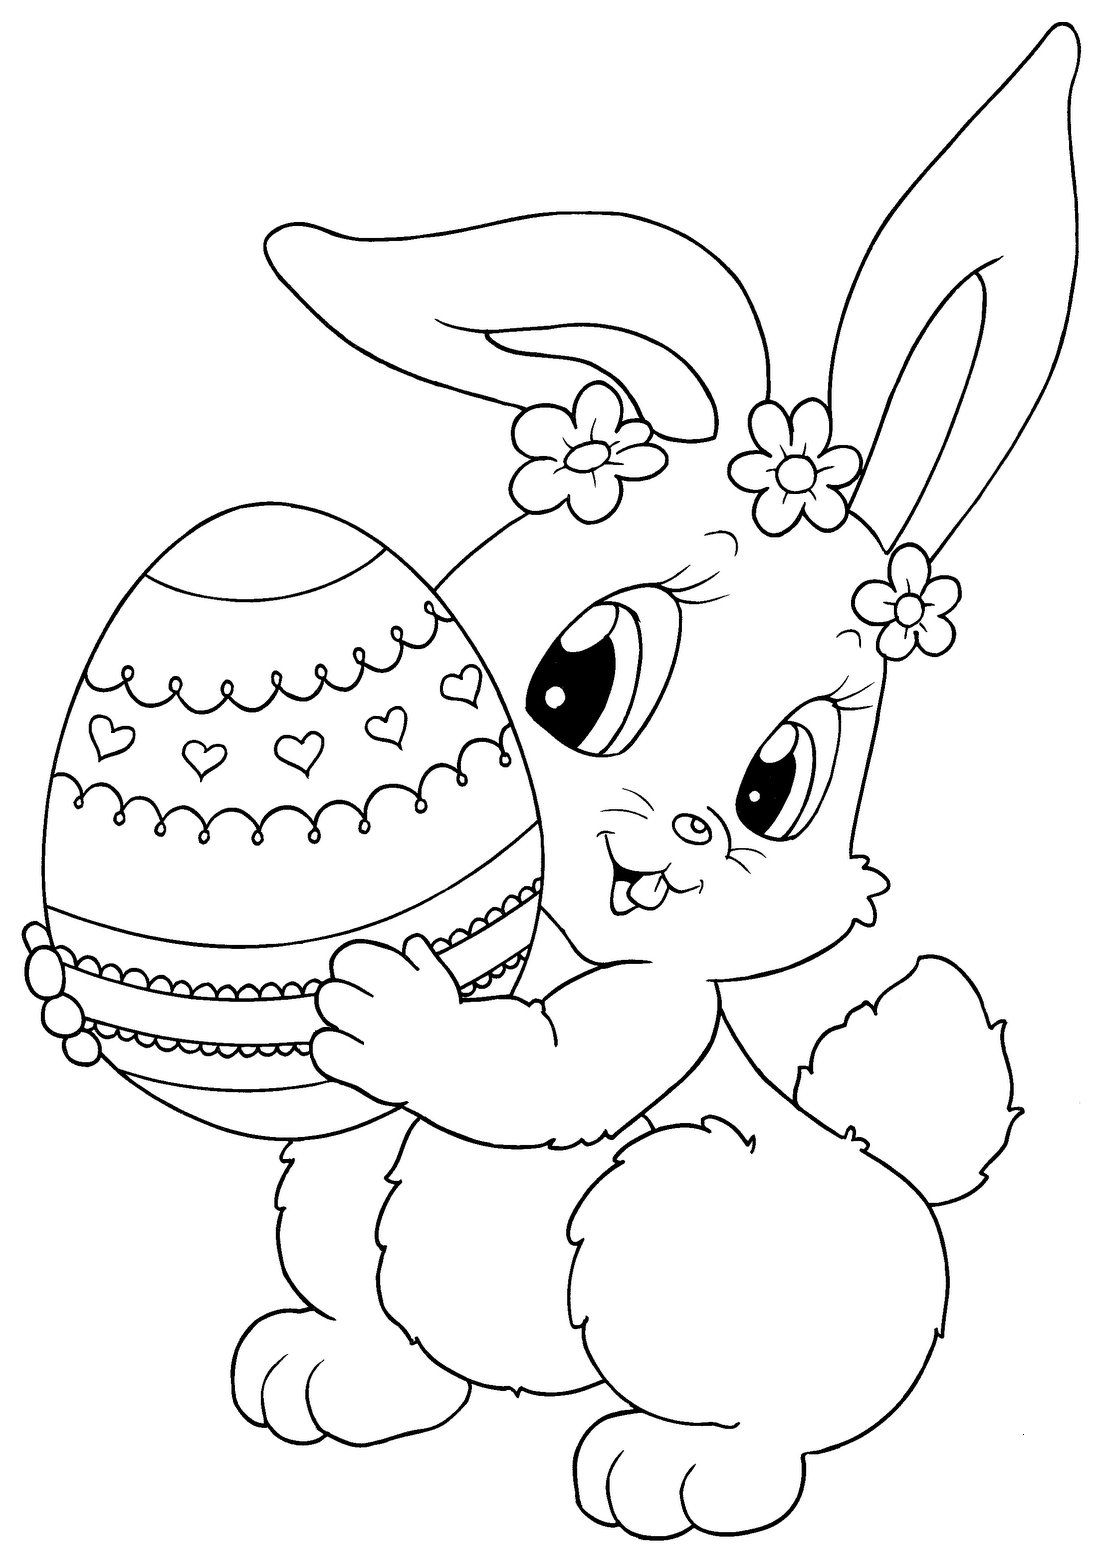 Top 15 Free Printable Easter Bunny Coloring Pages Line Gallery Of Bunny Egg by Rustchic Bucket Printable